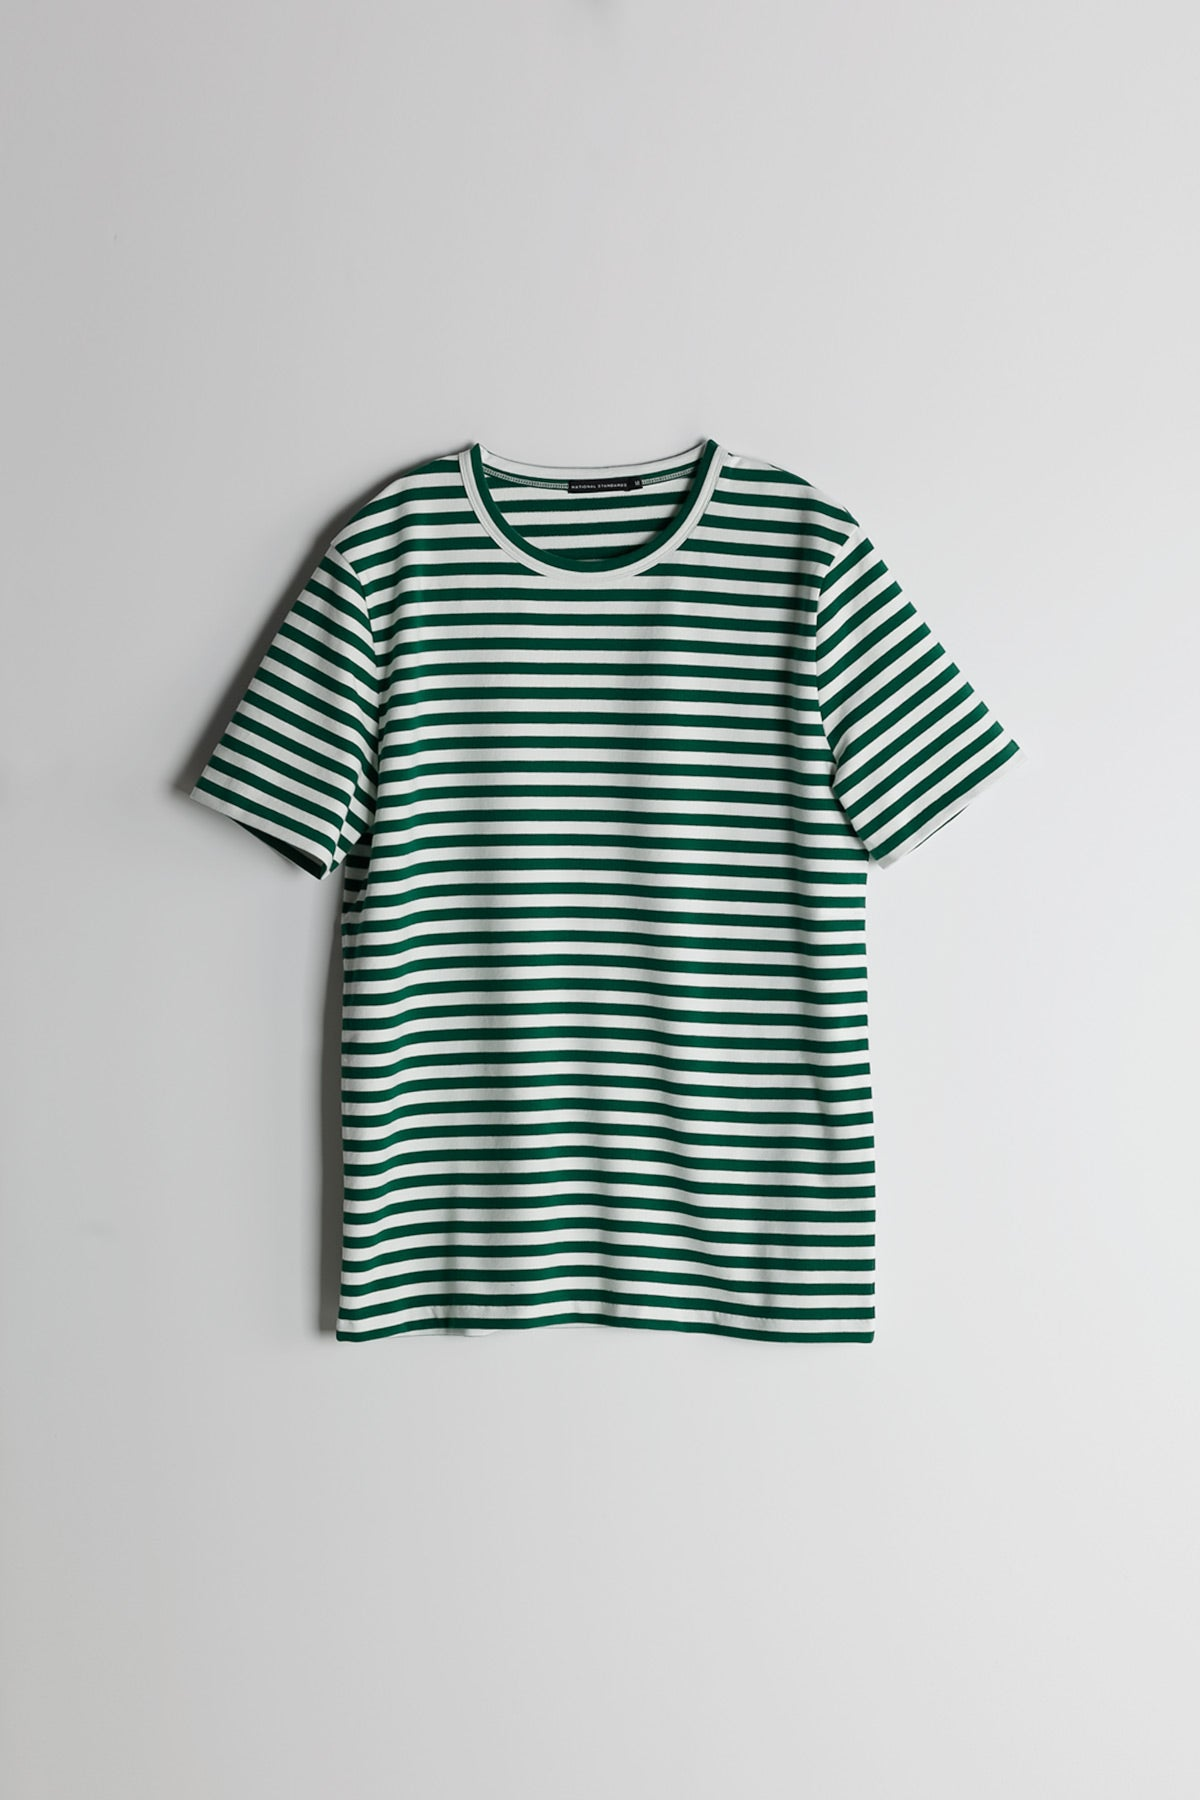 Marine Stripe Crew in White and Green 007